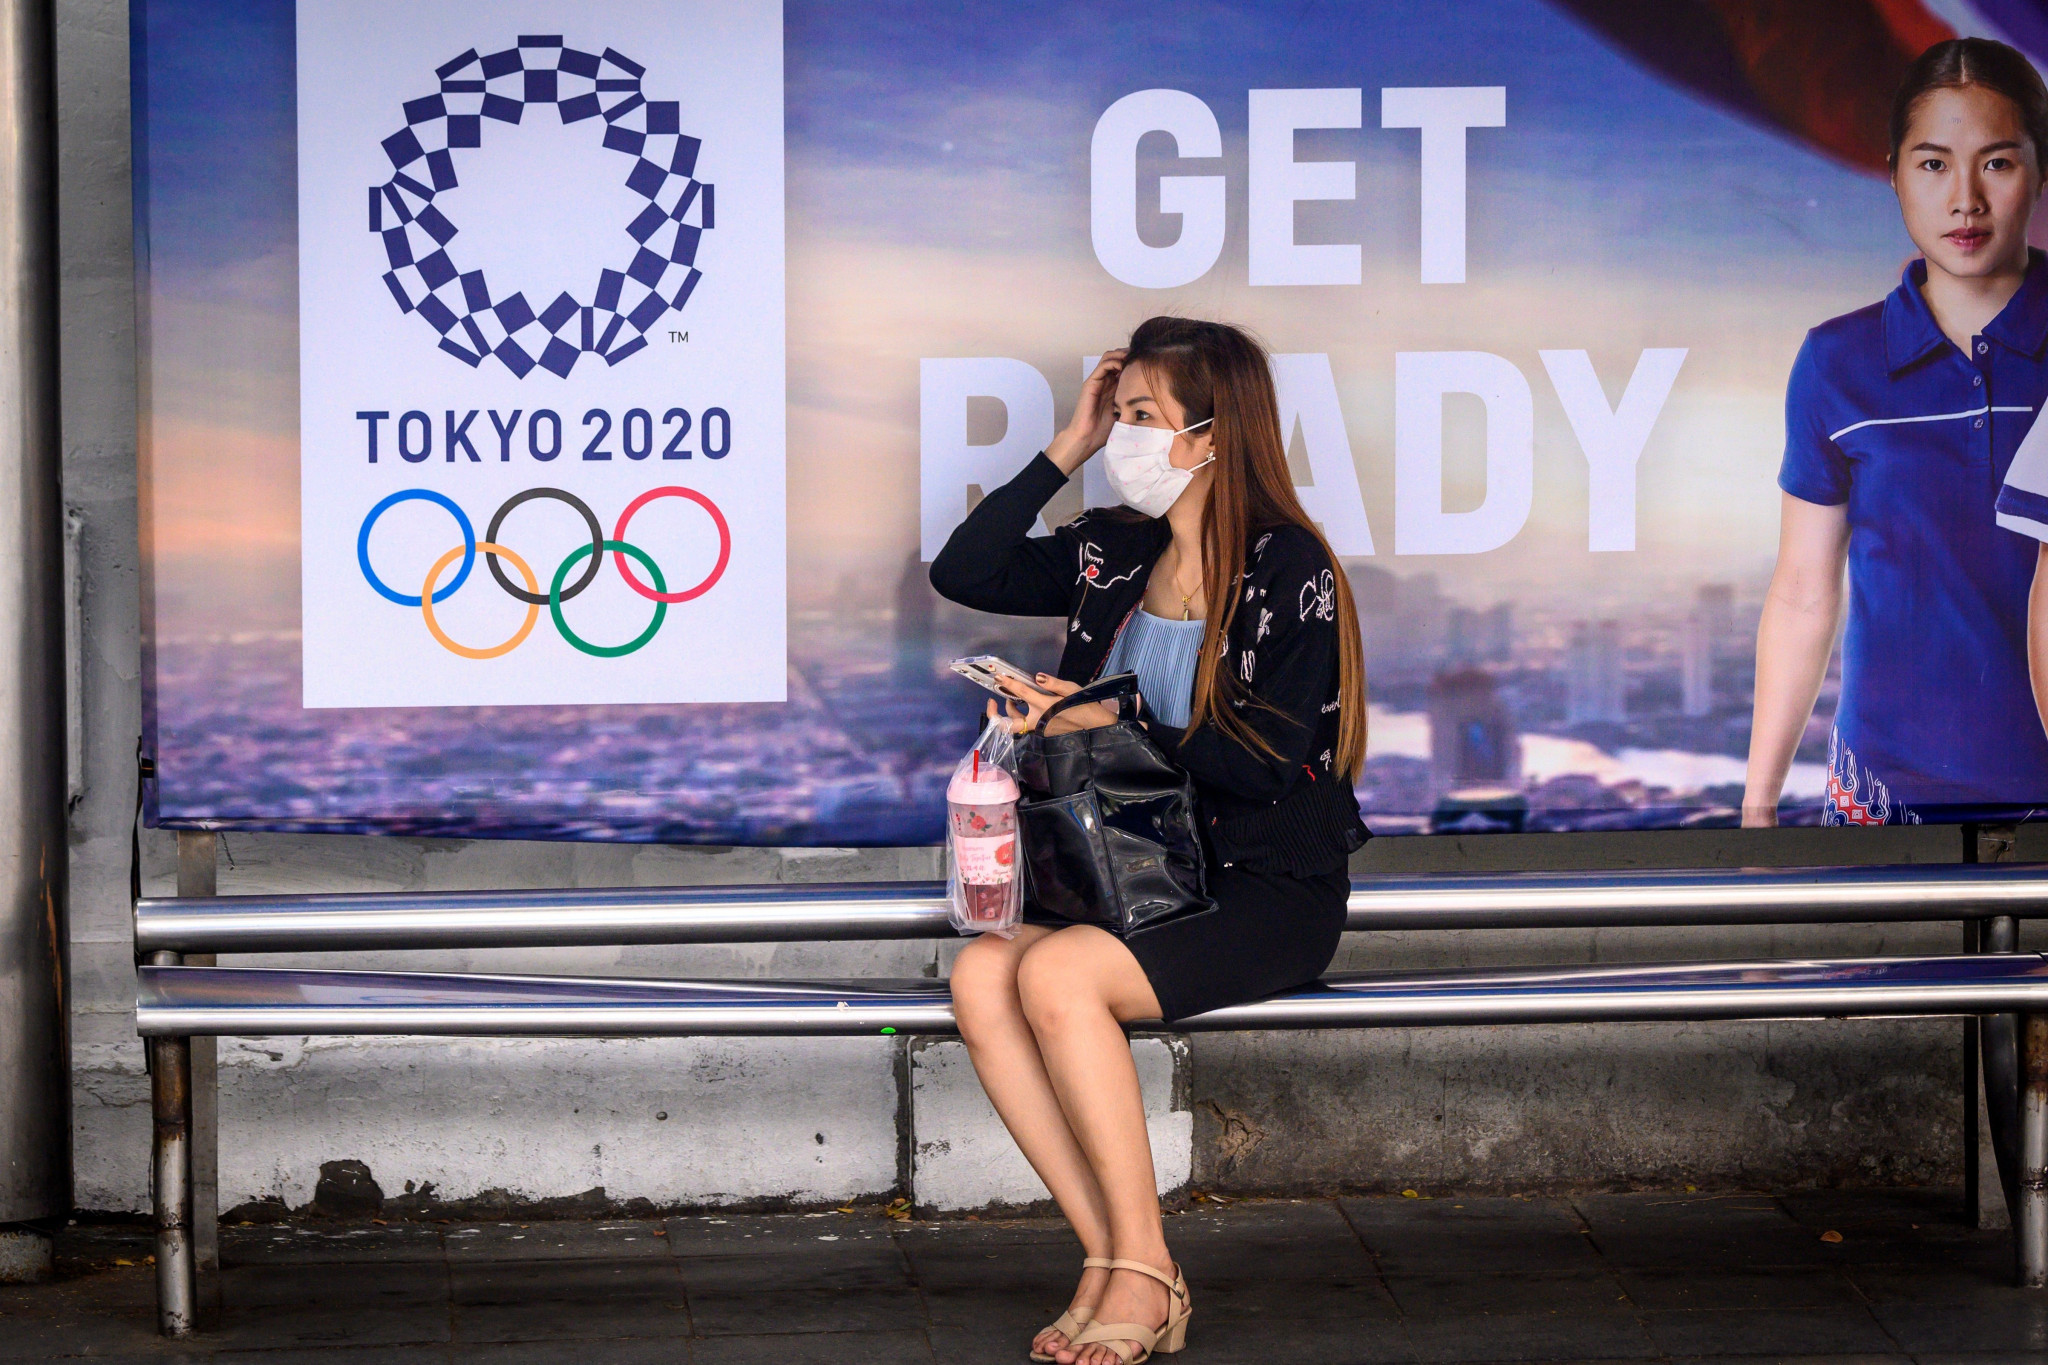 Tokyo 2020 preparations have been hampered by the coronavirus crisis and weightlifting is not the only sport to have had qualifiers postponed ©Getty Images